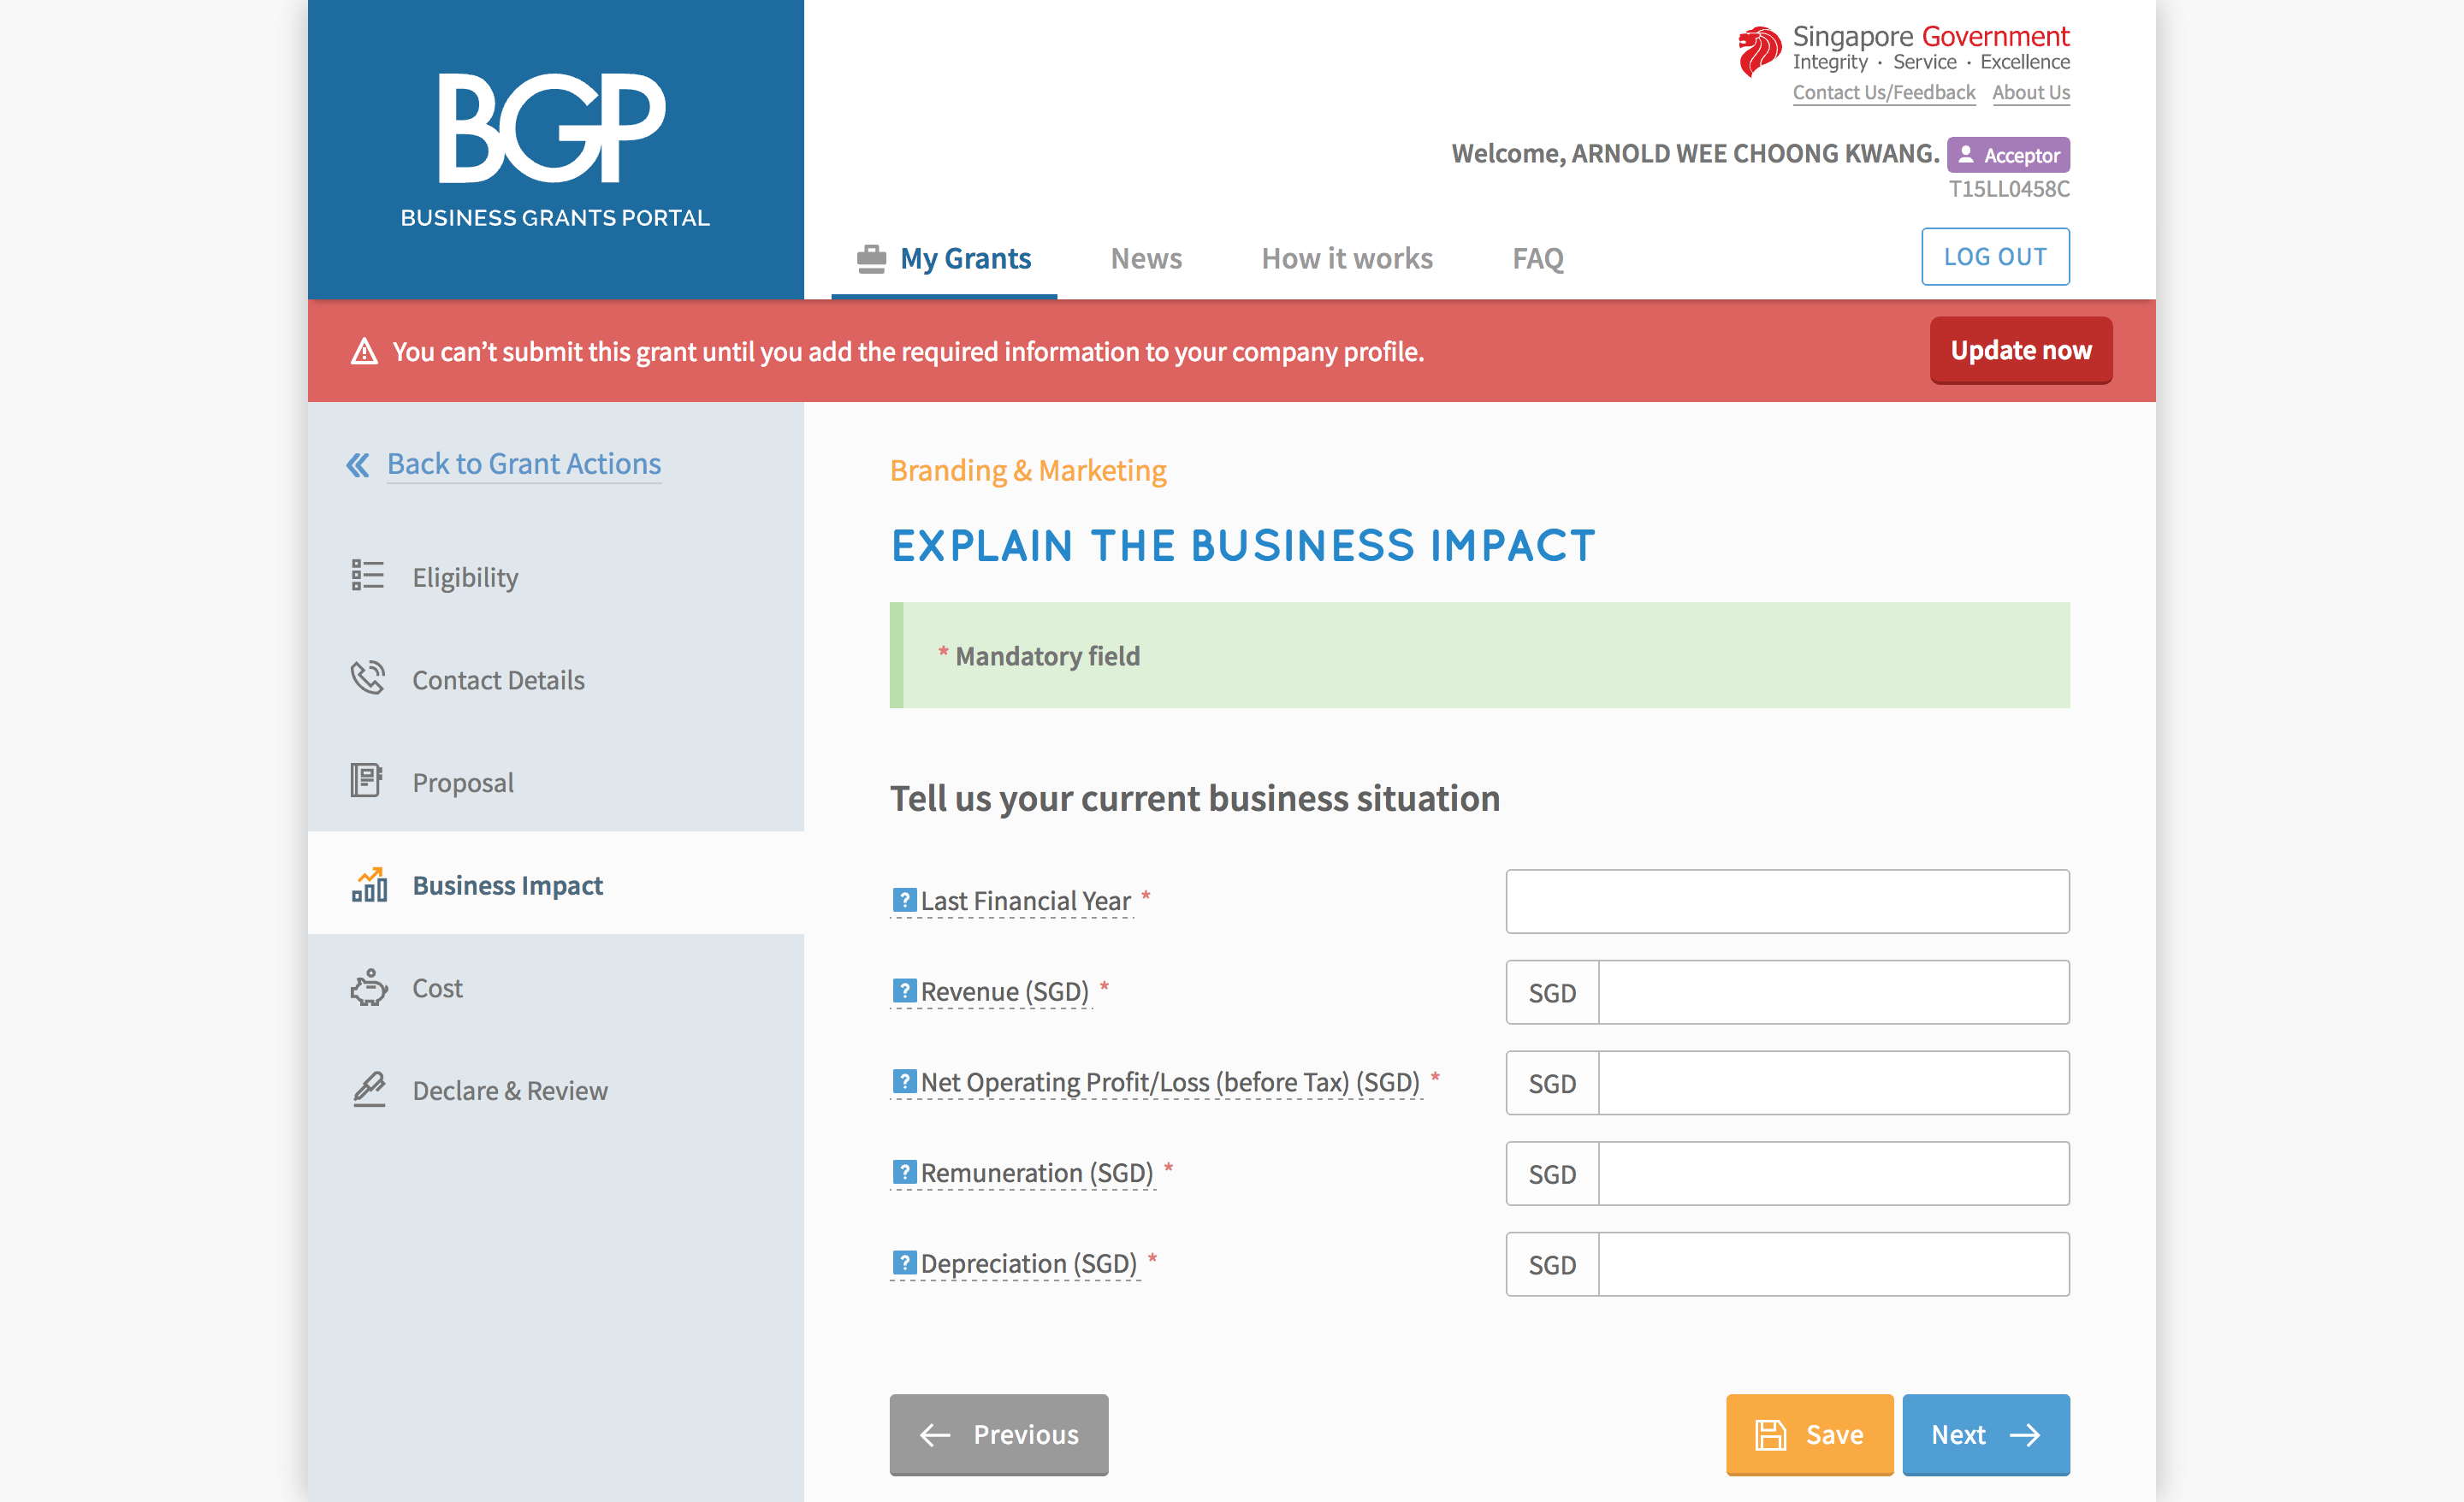 spring-cdg-business-grants-portal-5a